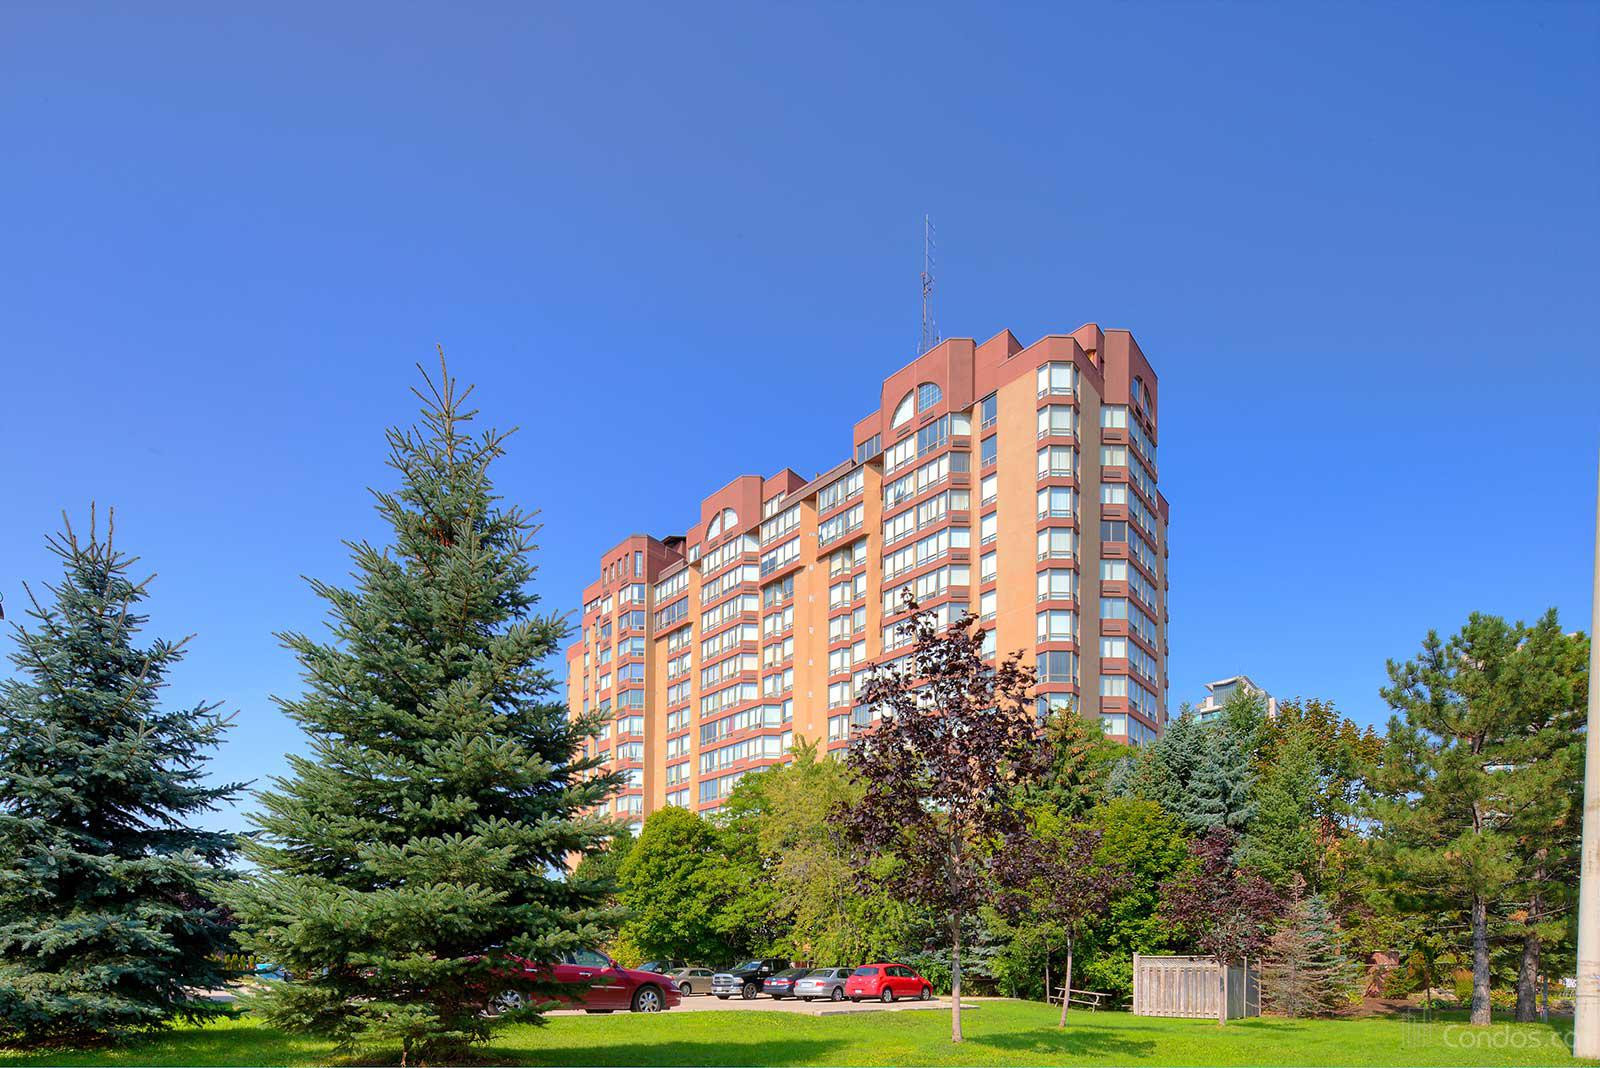 The Fairmont at 25 Fairview Rd W, Mississauga 0